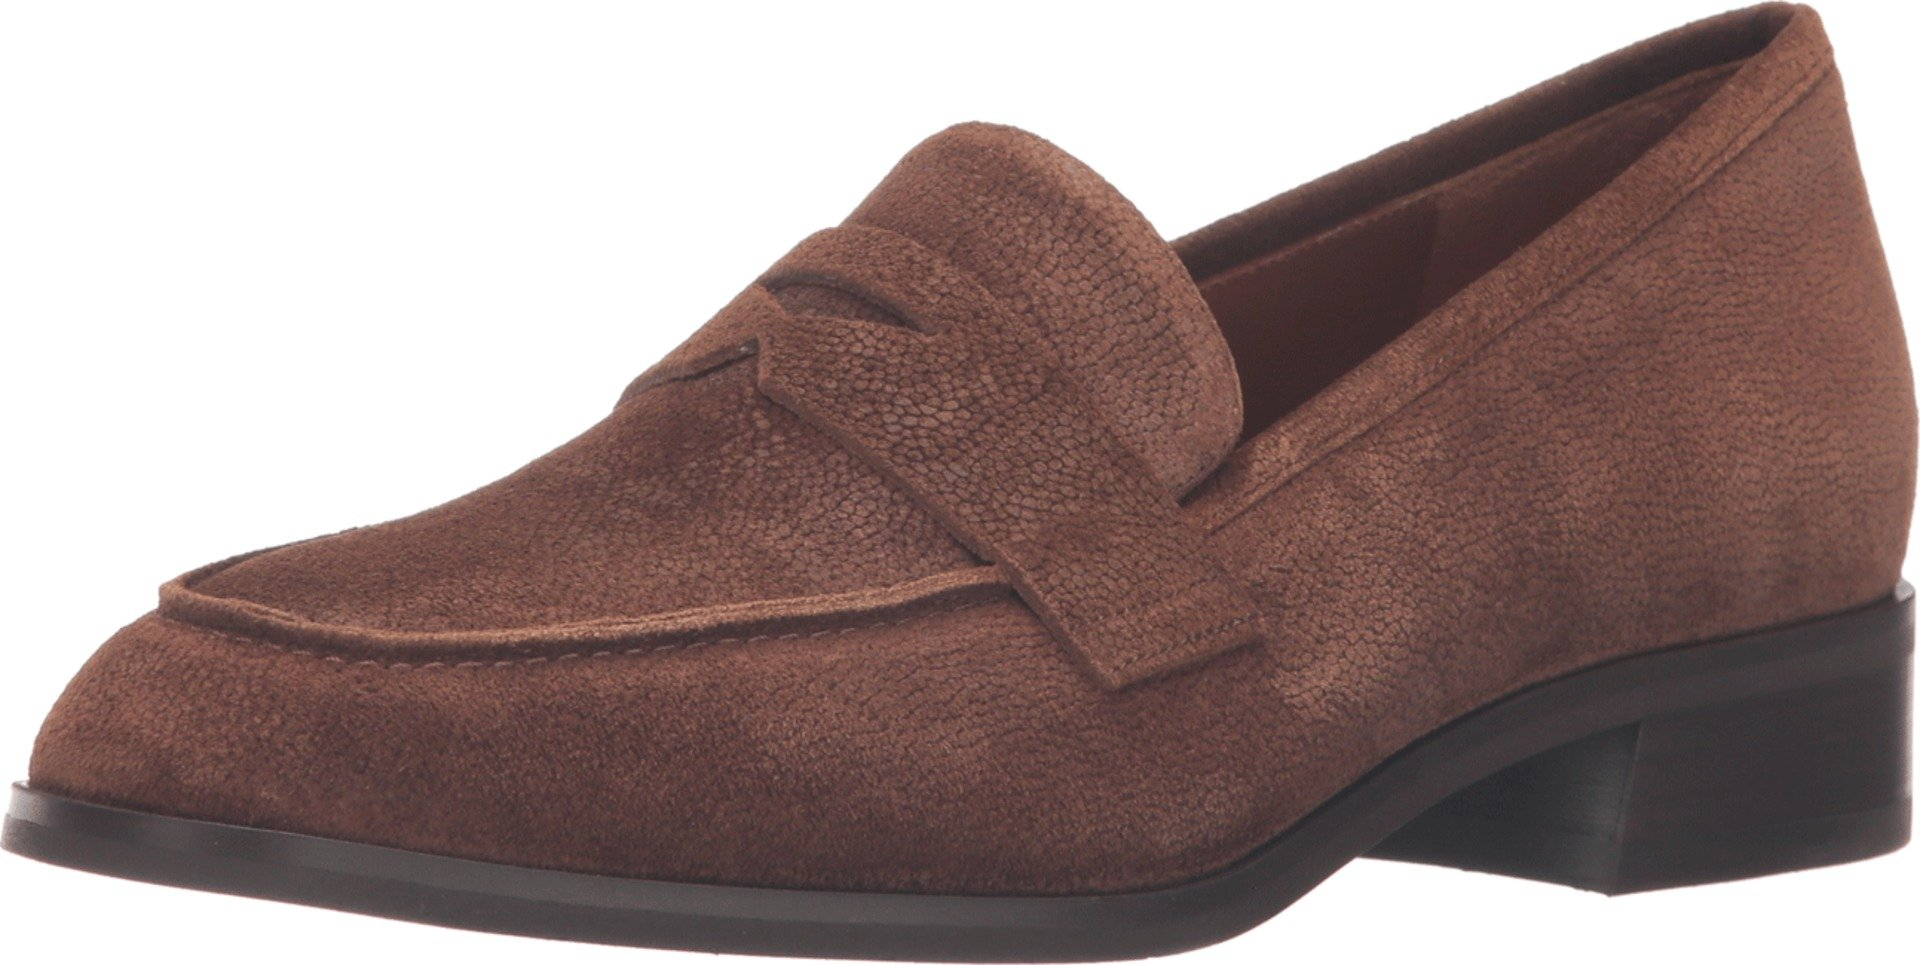 Aquatalia Women's Sharon Chestnut Pebbled Suede 8 B US